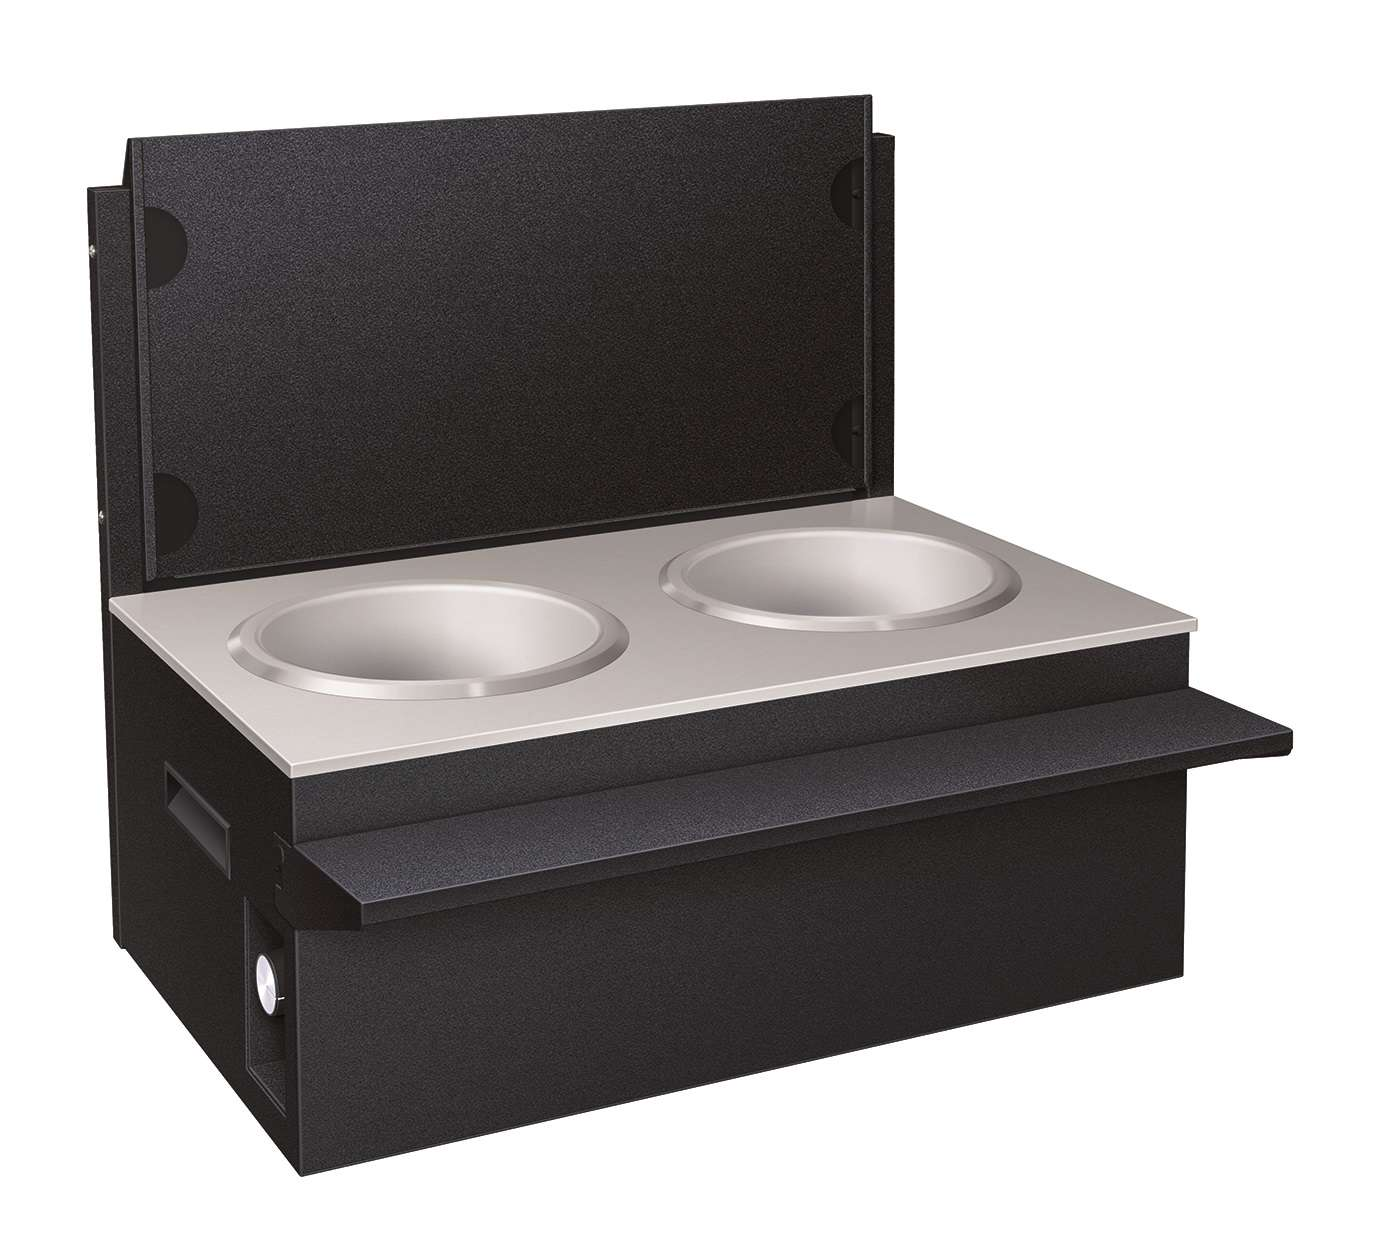 https://www.ckitchen.com/p/cambro-etr24580-camshelving-elements ...